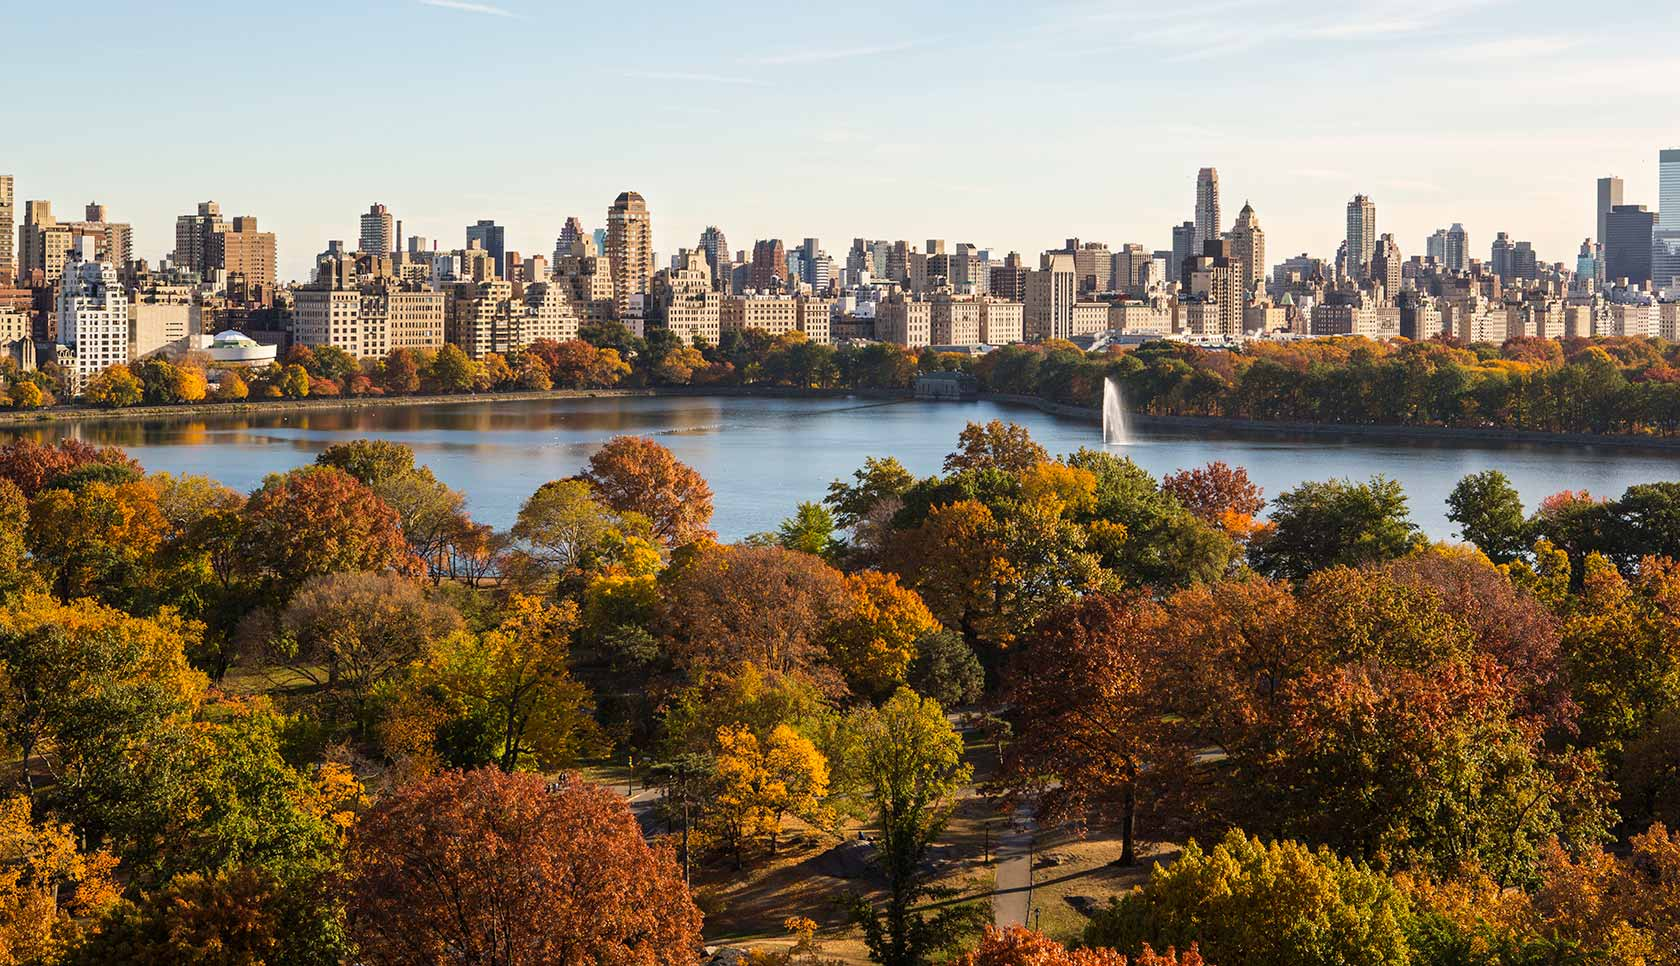 Adirondack Fall Wallpaper Central Park The Most Famous Park In New York United